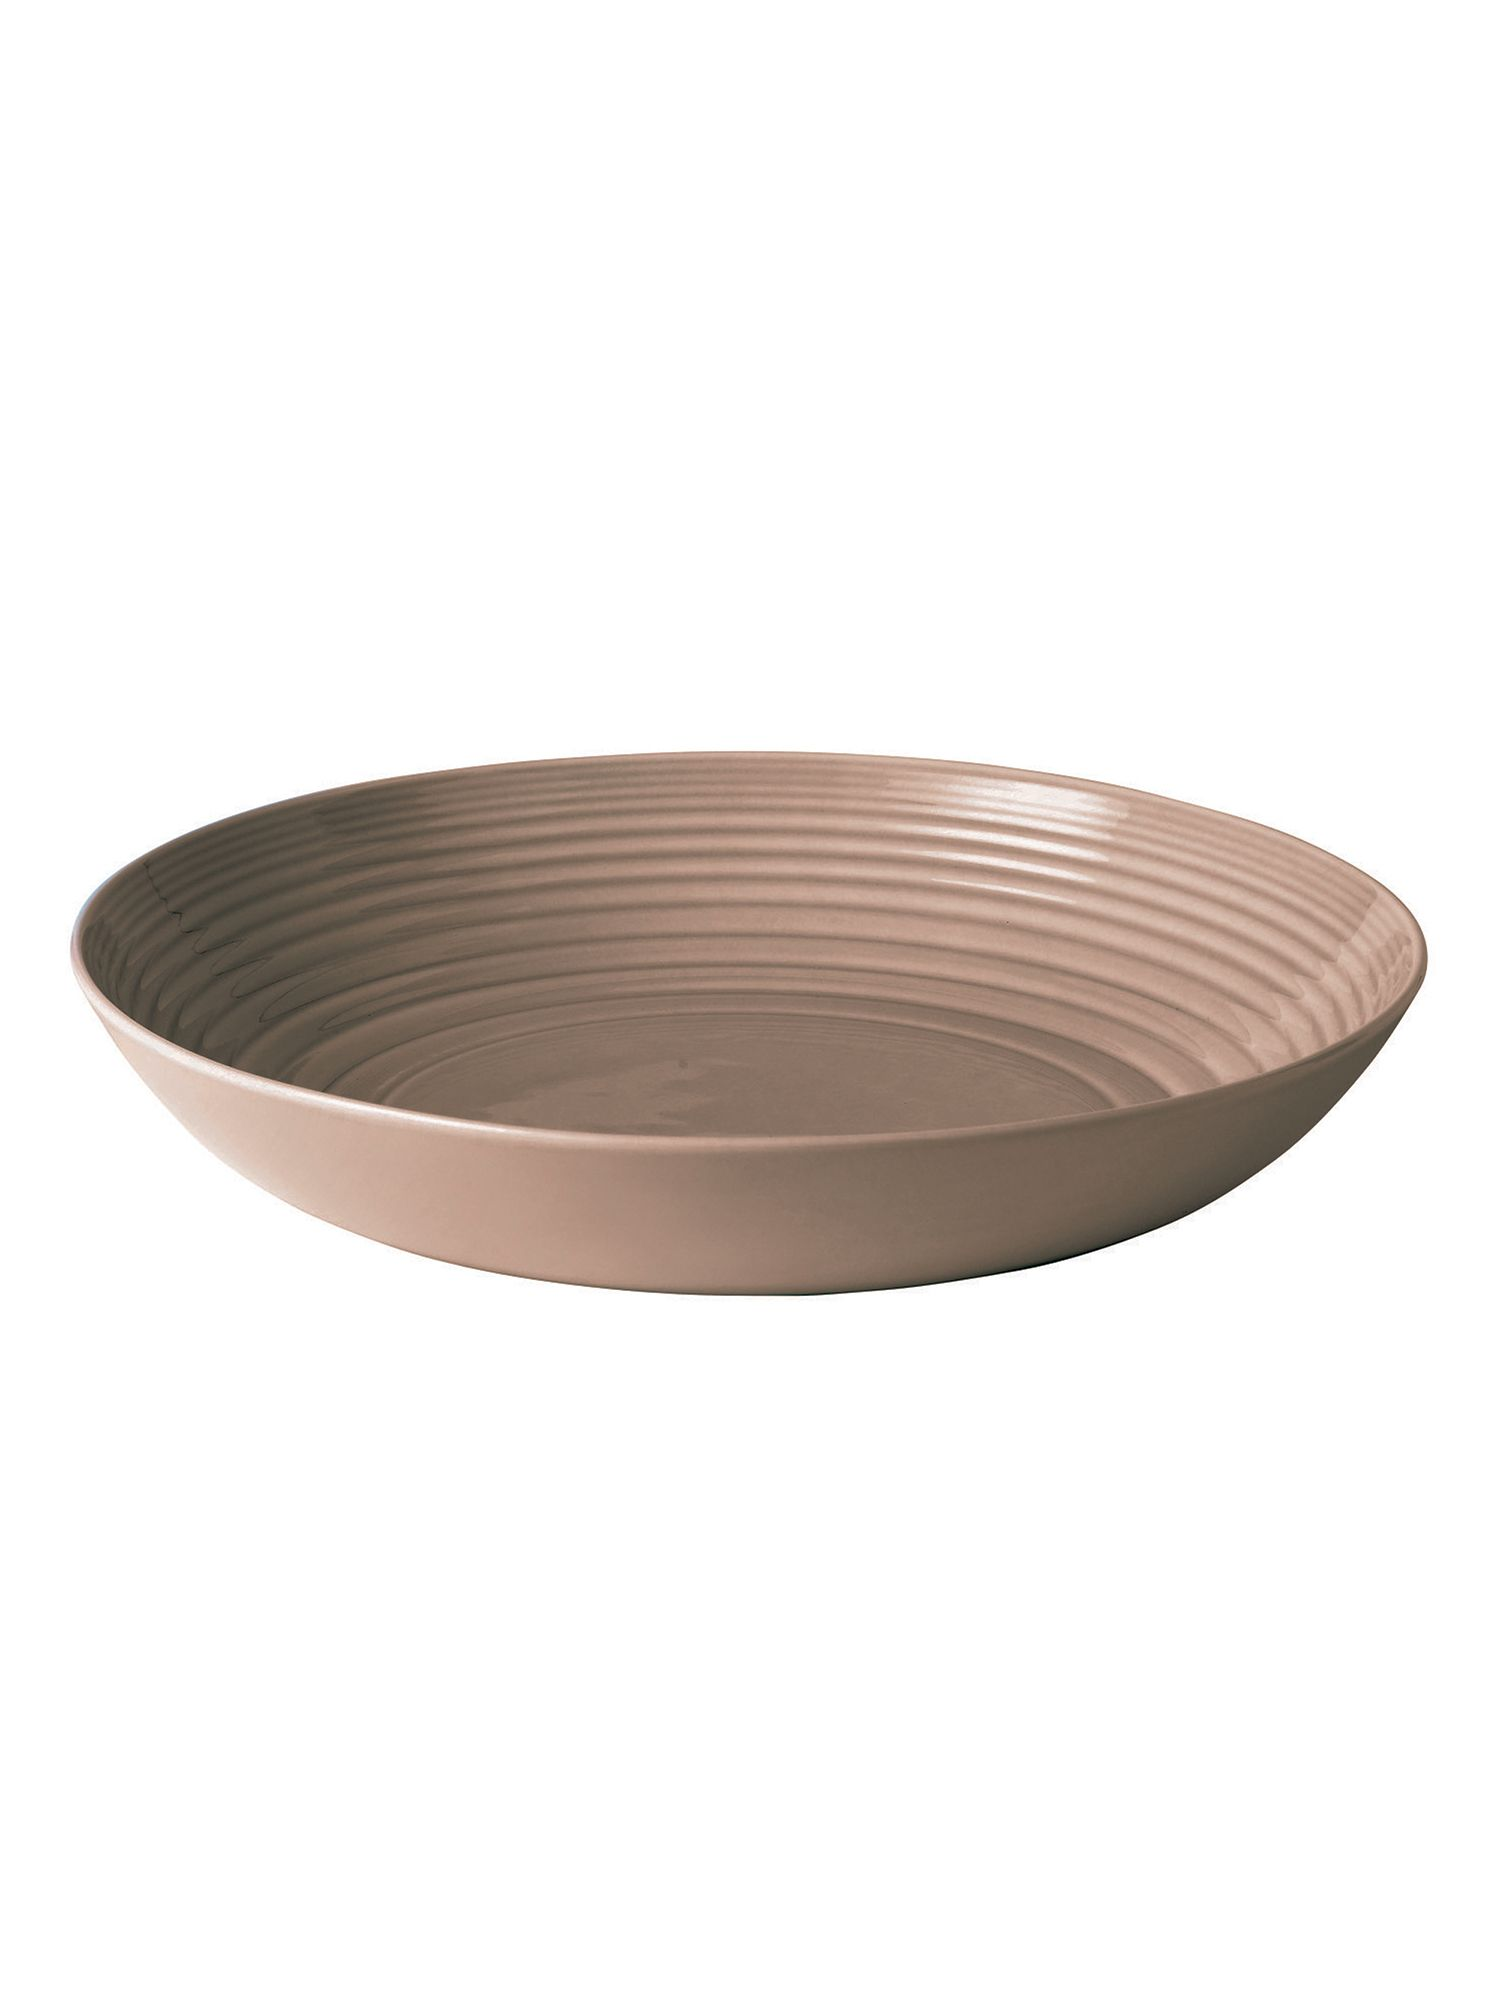 Gordon Ramsay maze taupe serving bowl